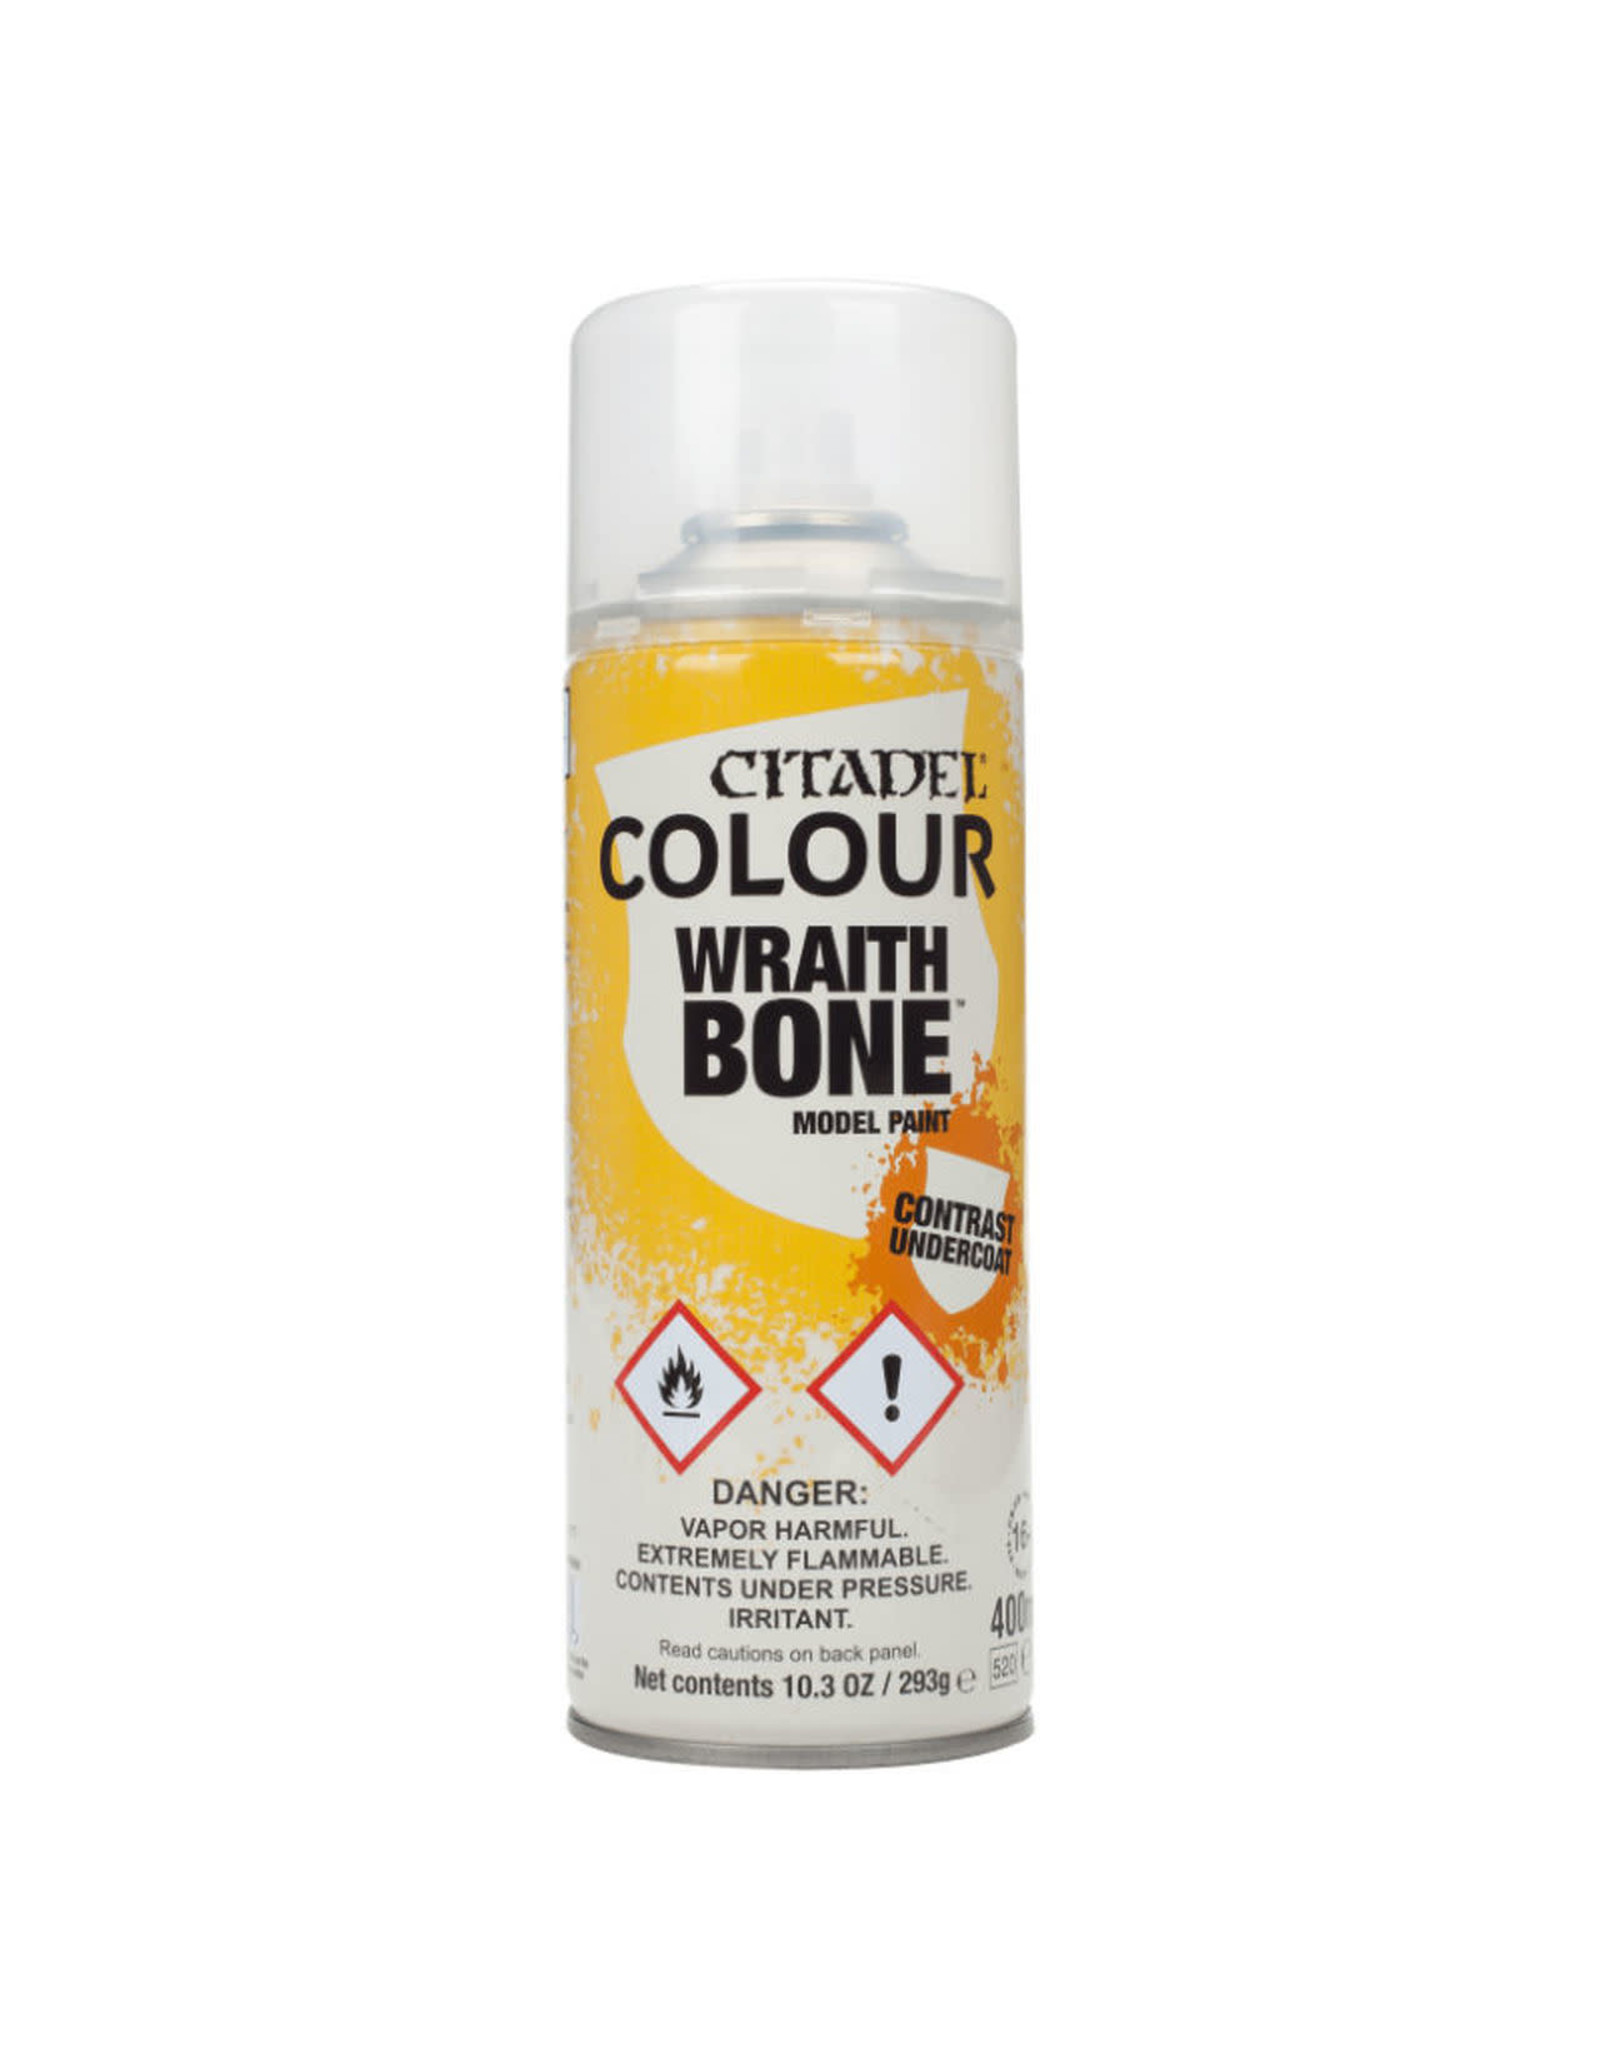 GAMES WORKSHOP CITADEL COLOUR WRAITHBONE SPRAY 400ML